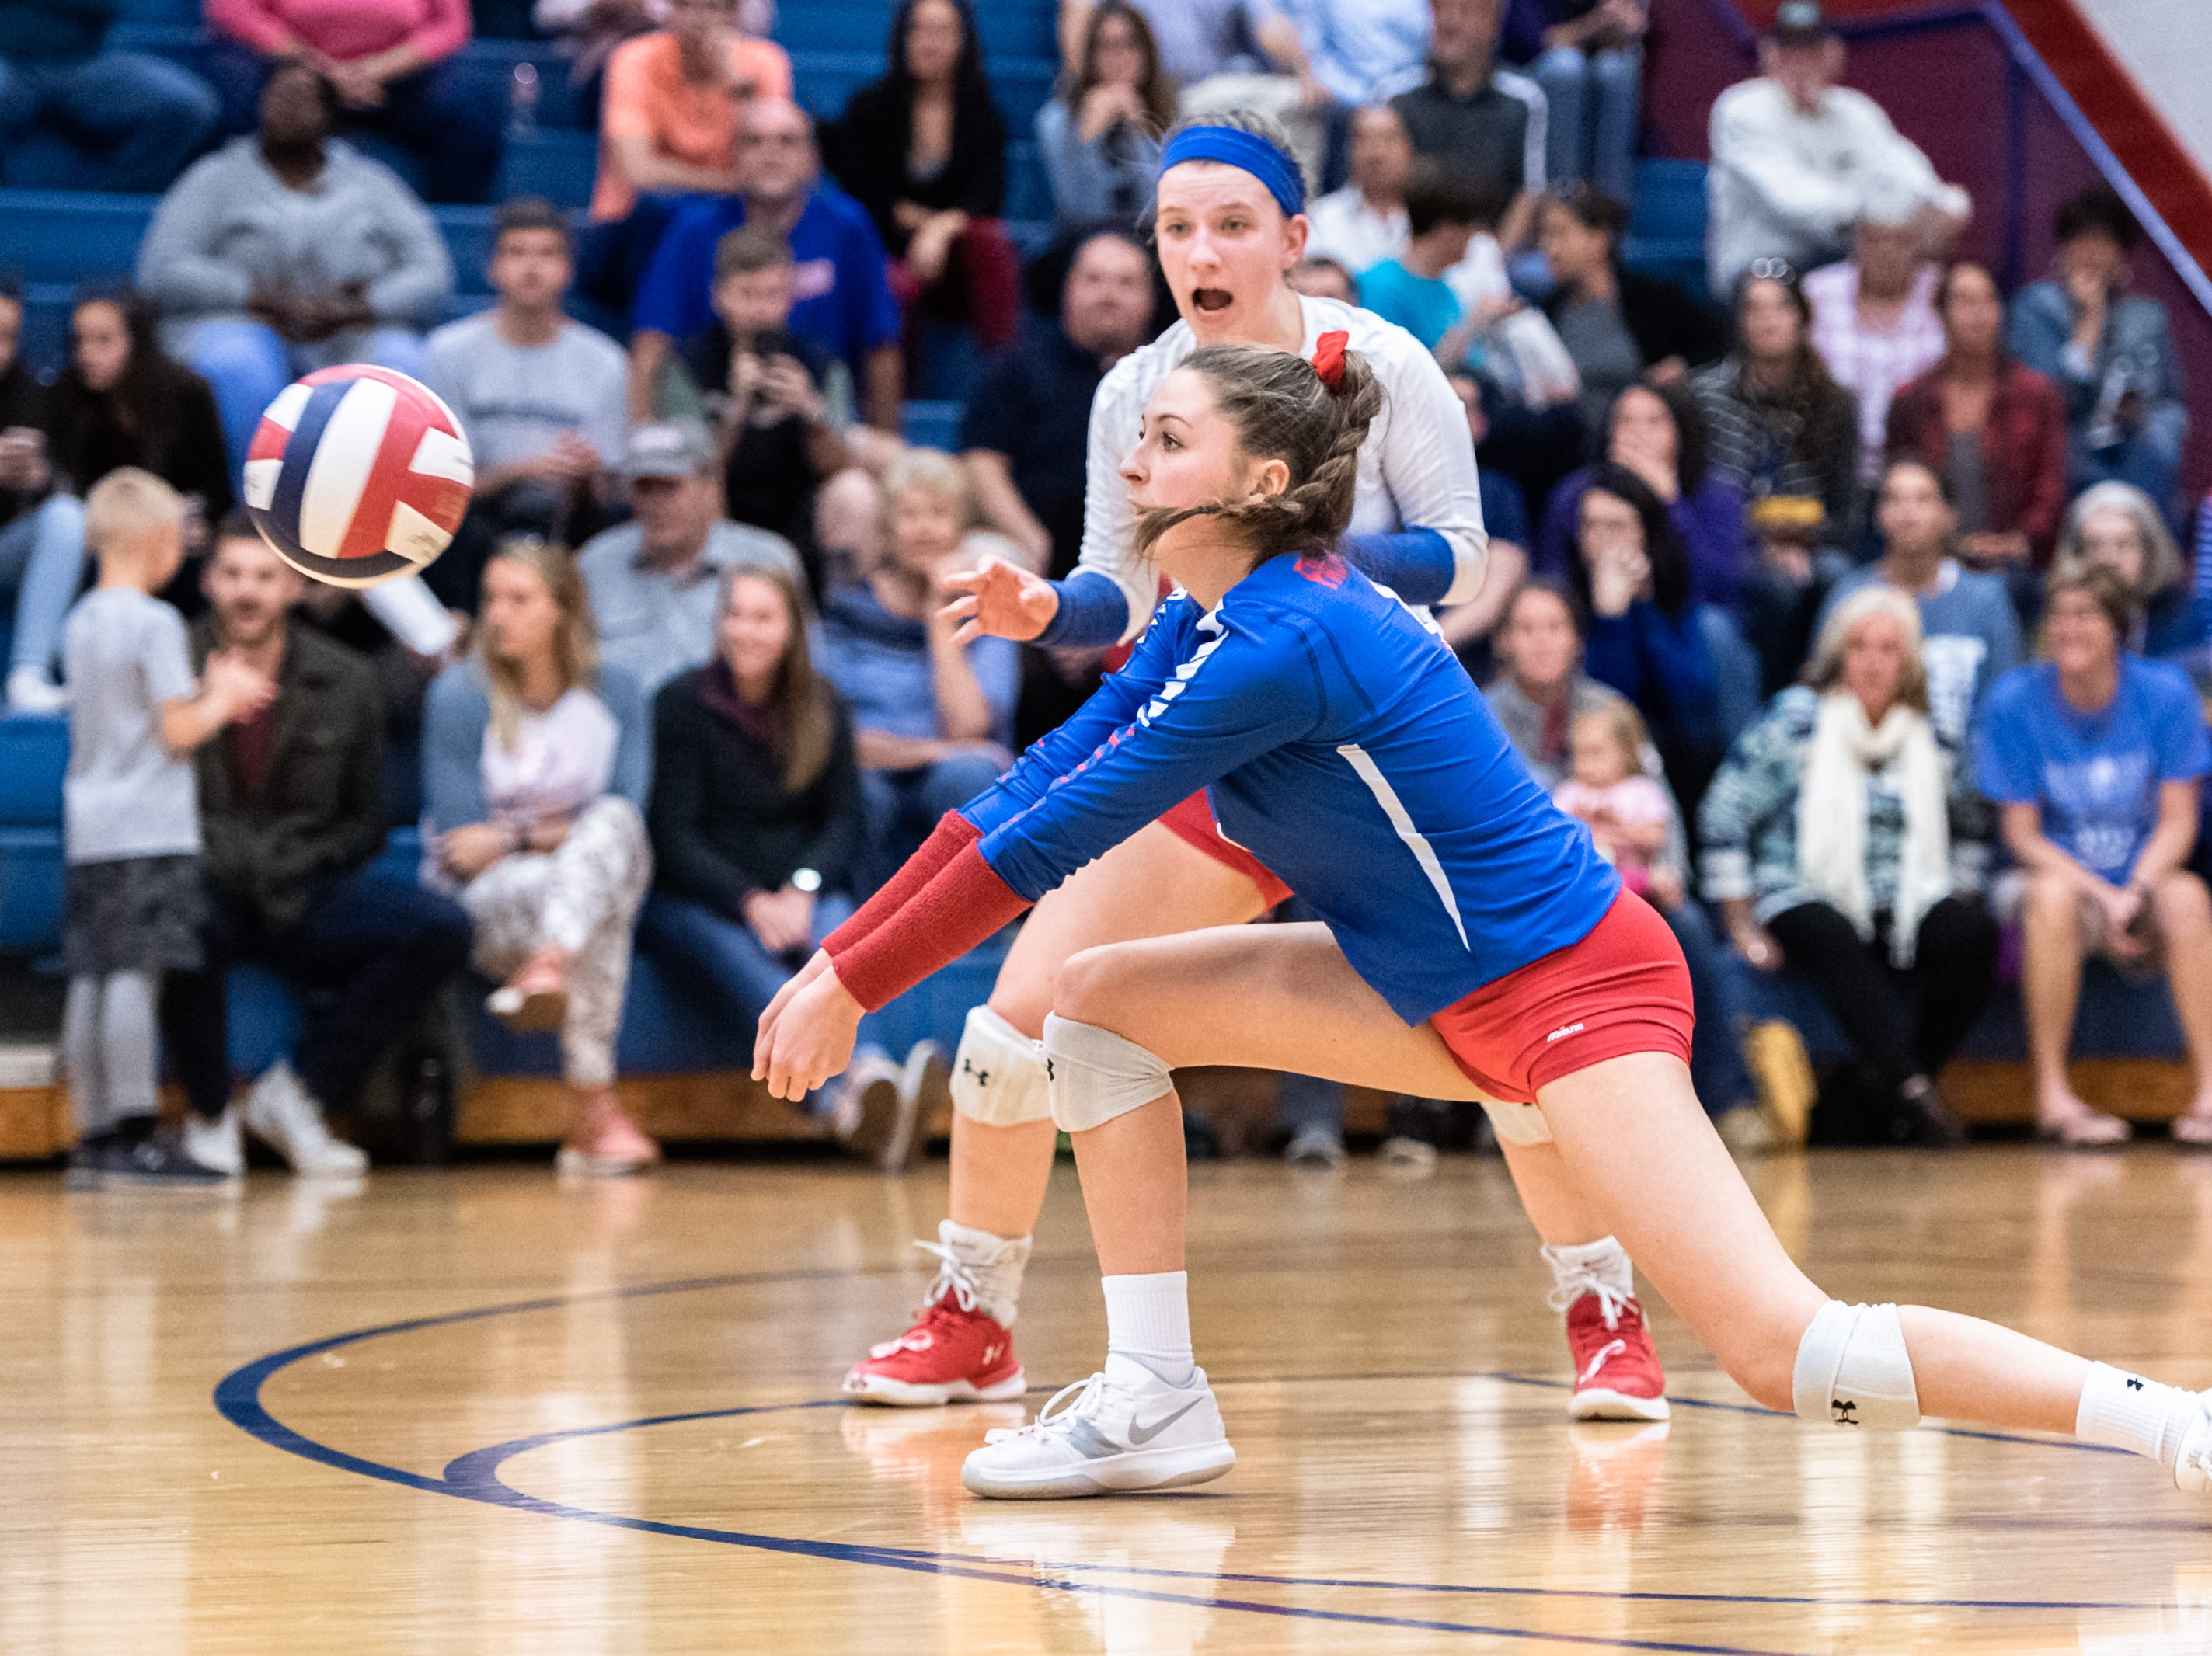 West Henderson's Bailey Lance returns a shot to Reynolds during their WMAC tournament championship volleyball game Oct. 18, 2018.